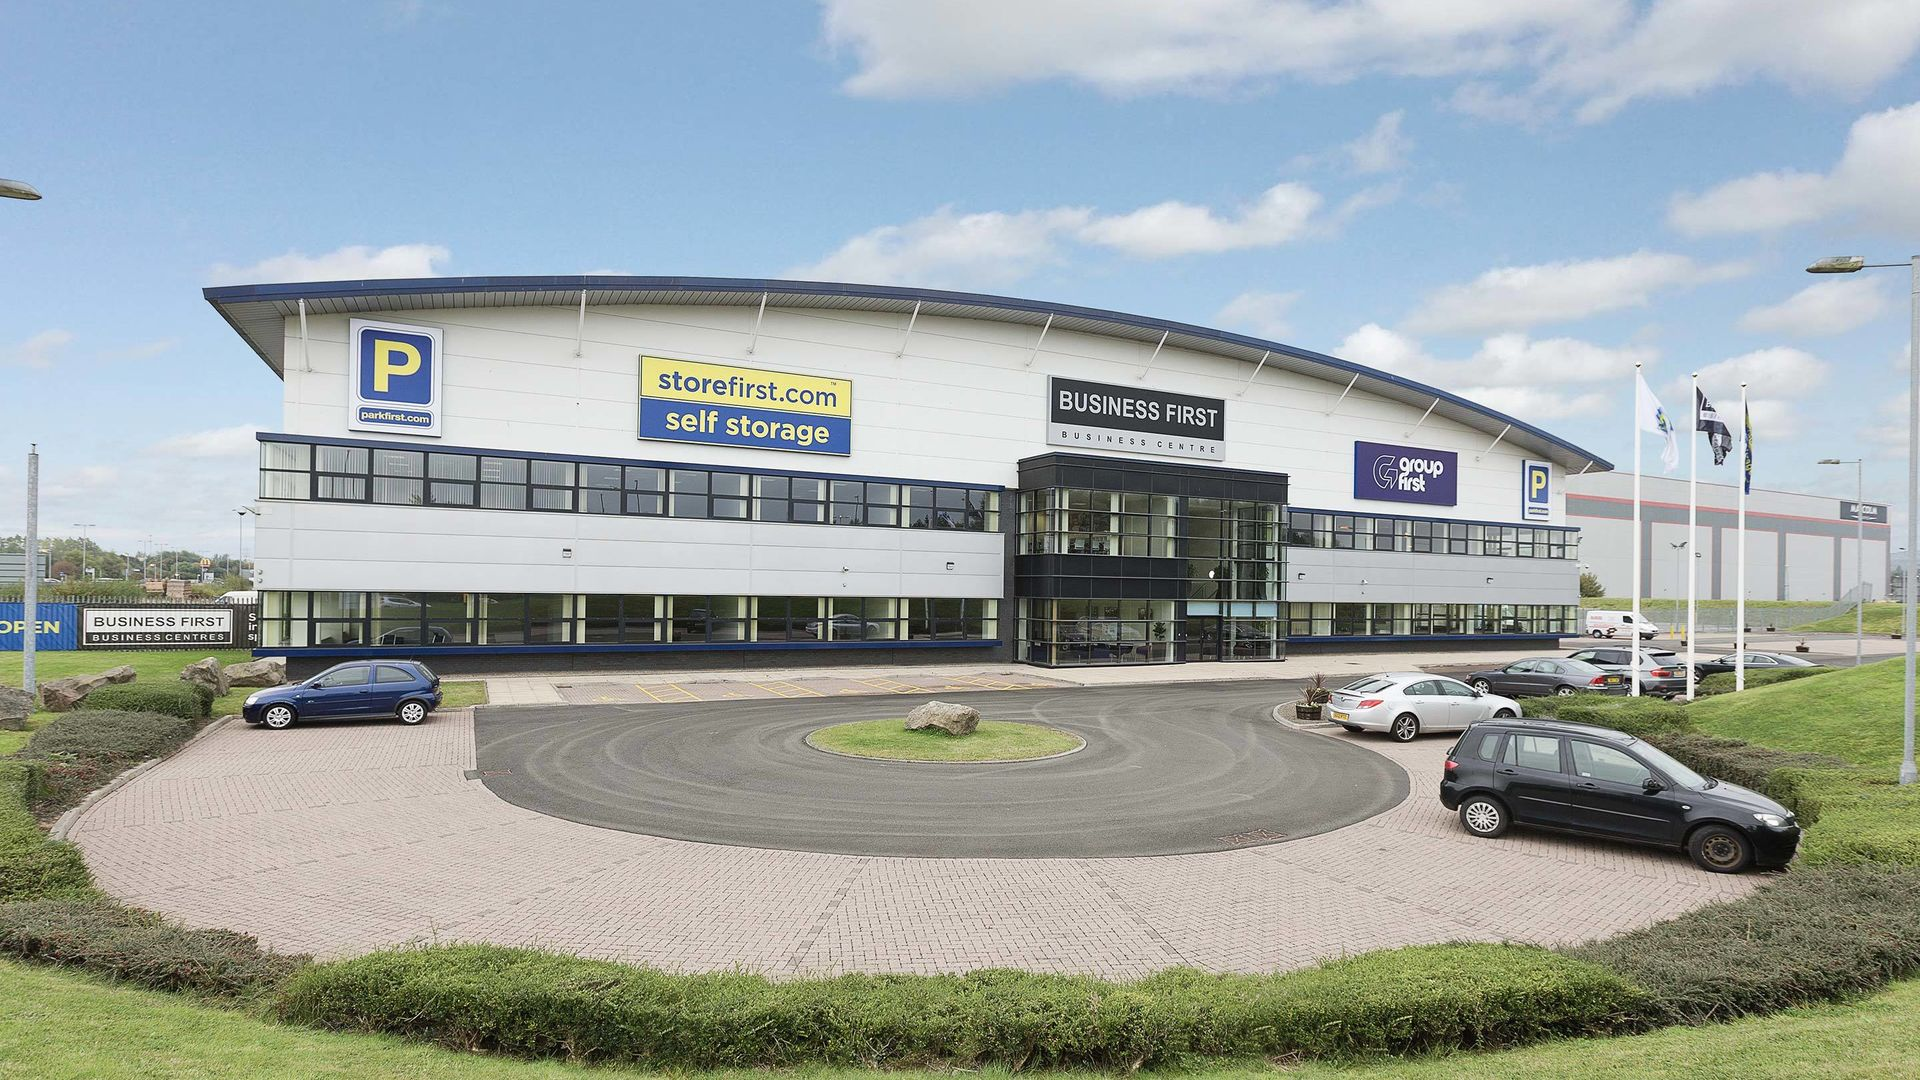 Store first self storage in glasgow weeks ½ price